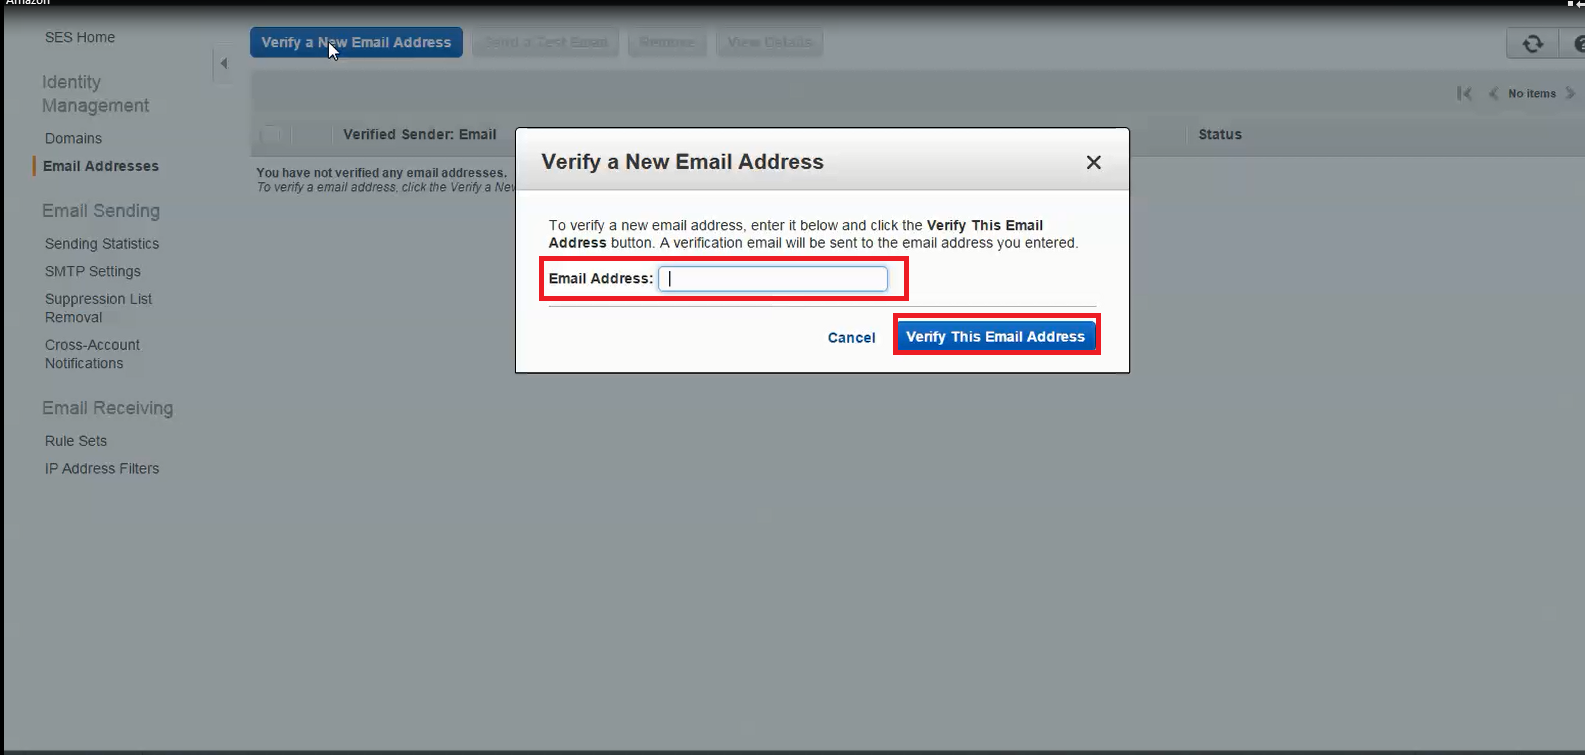 19.Verify new email address